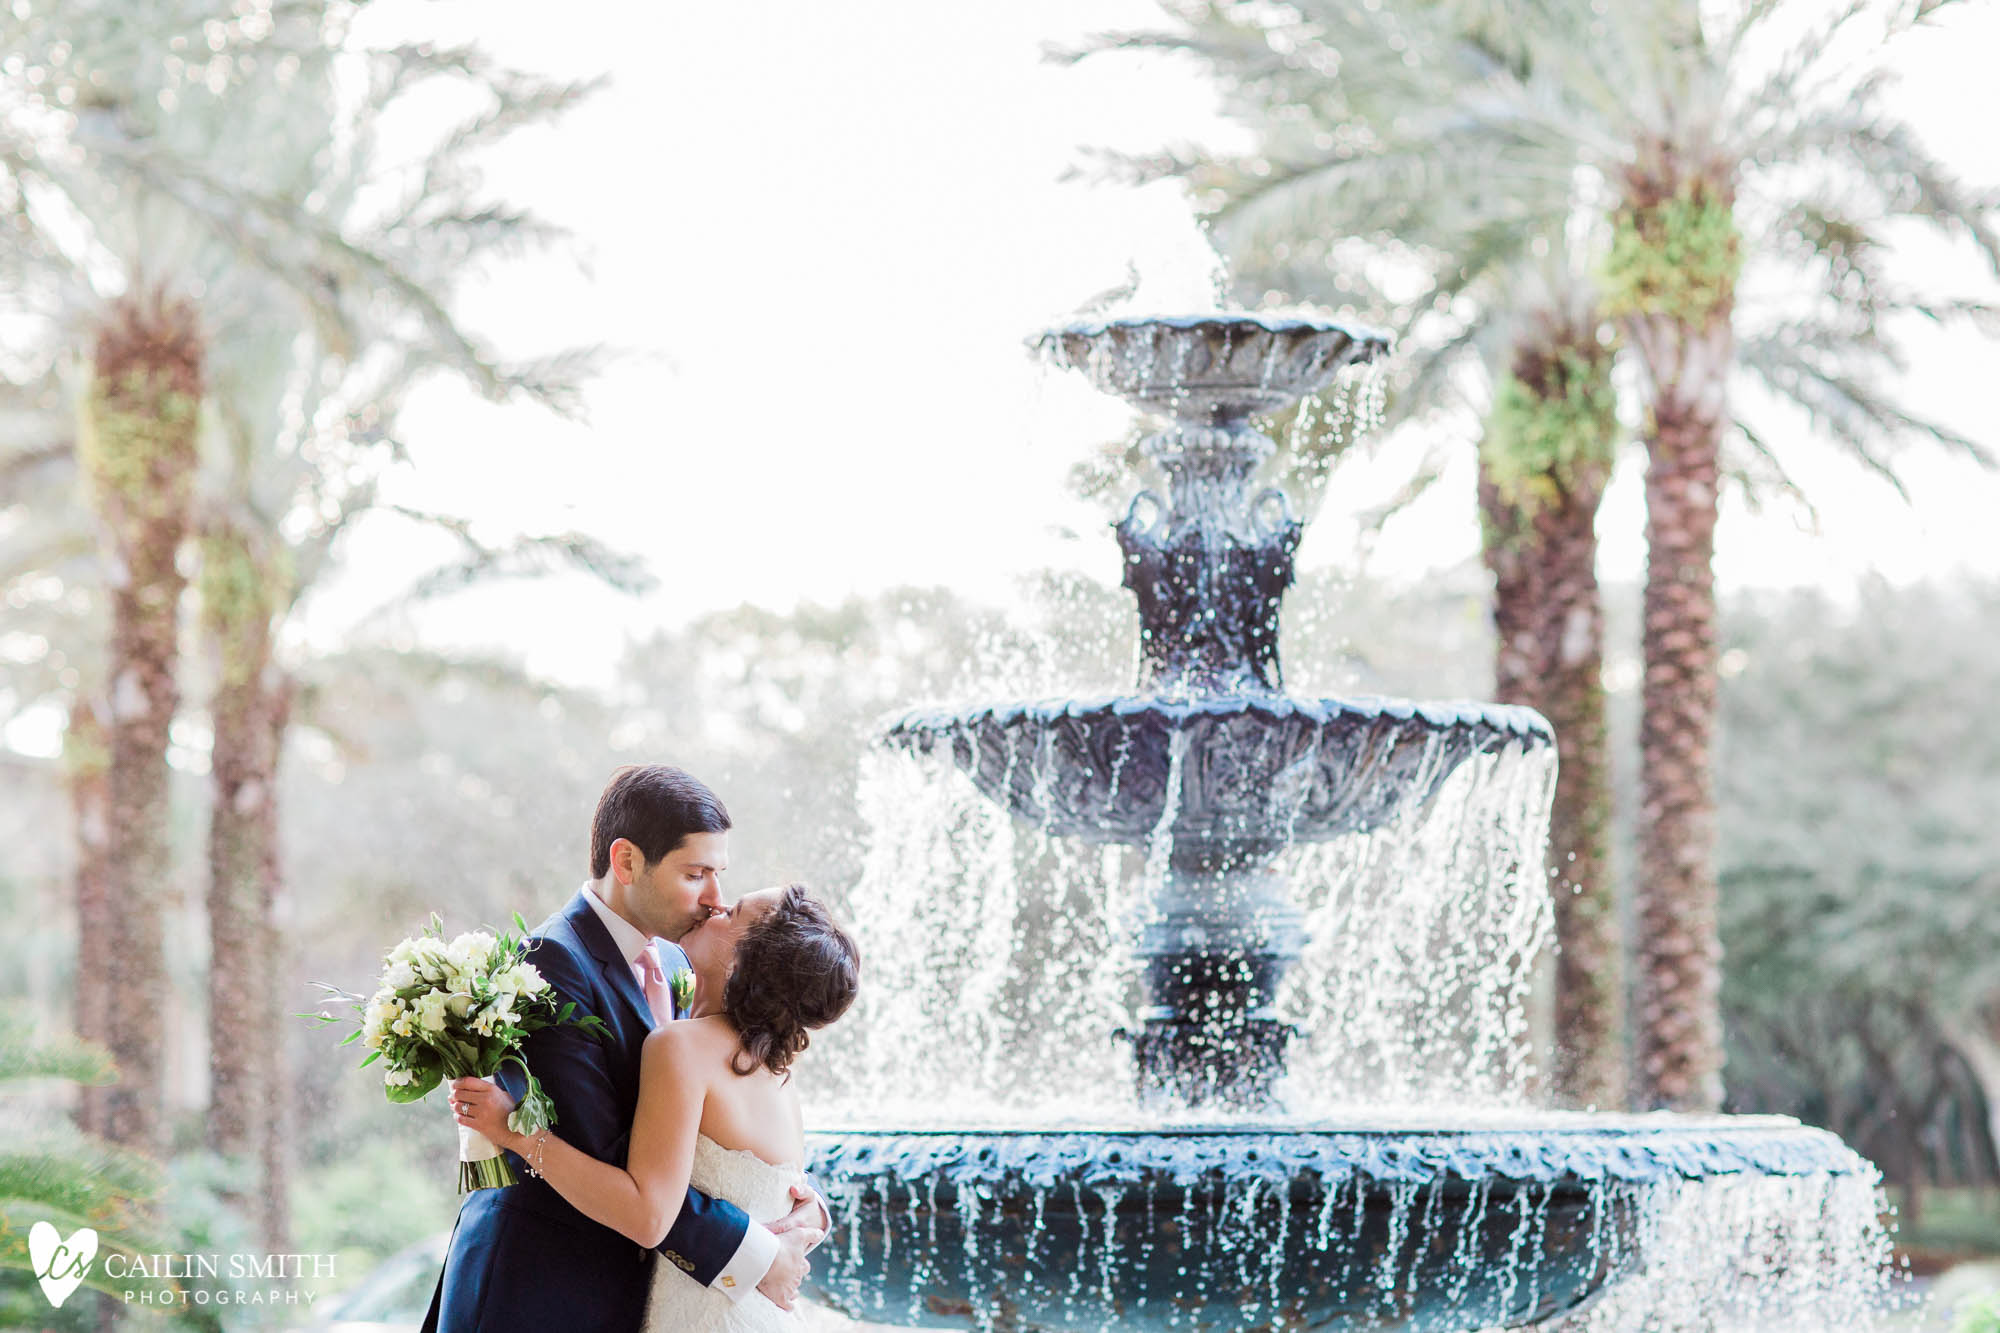 Hallie_Ari_Ritz_Carlton_Amelia_Island_Wedding_Photography_0054.jpg